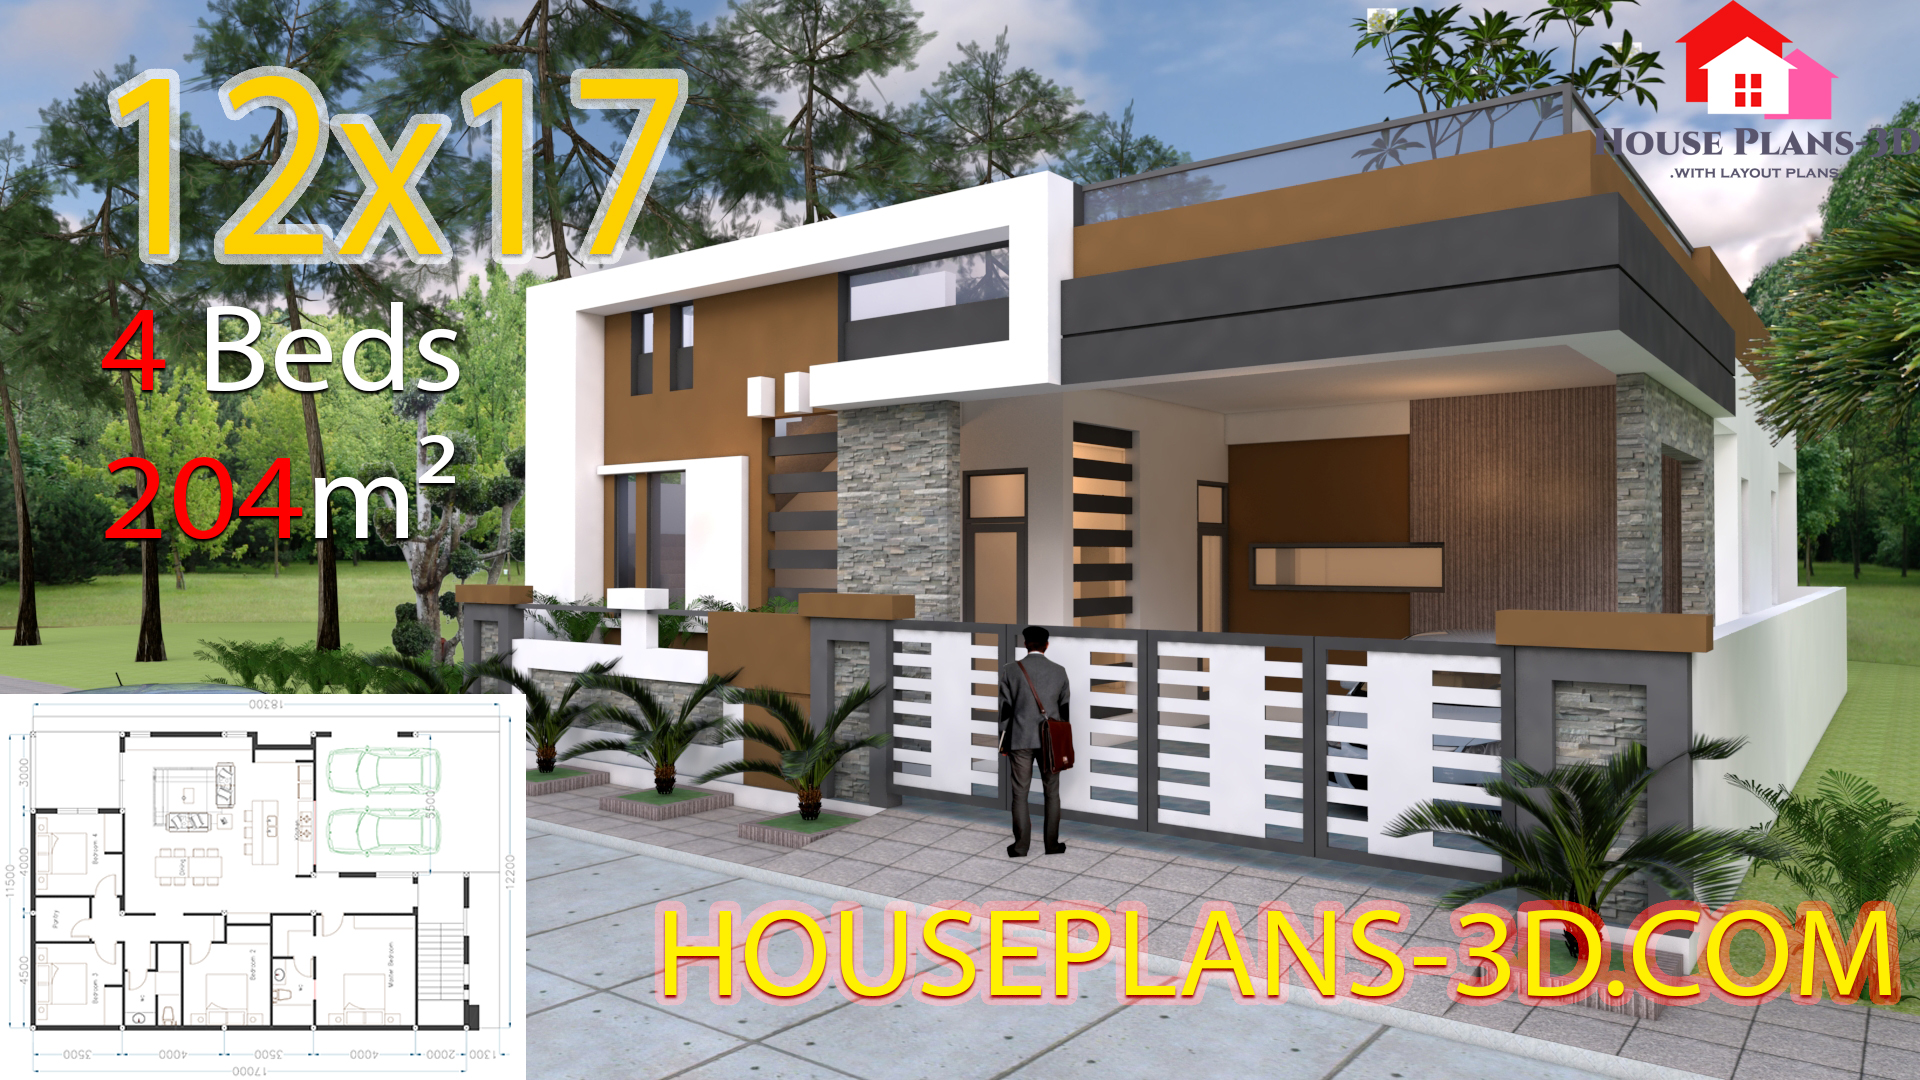 House Design 12x17 With 4 Bedrooms Terrace Roof House Plans 3d